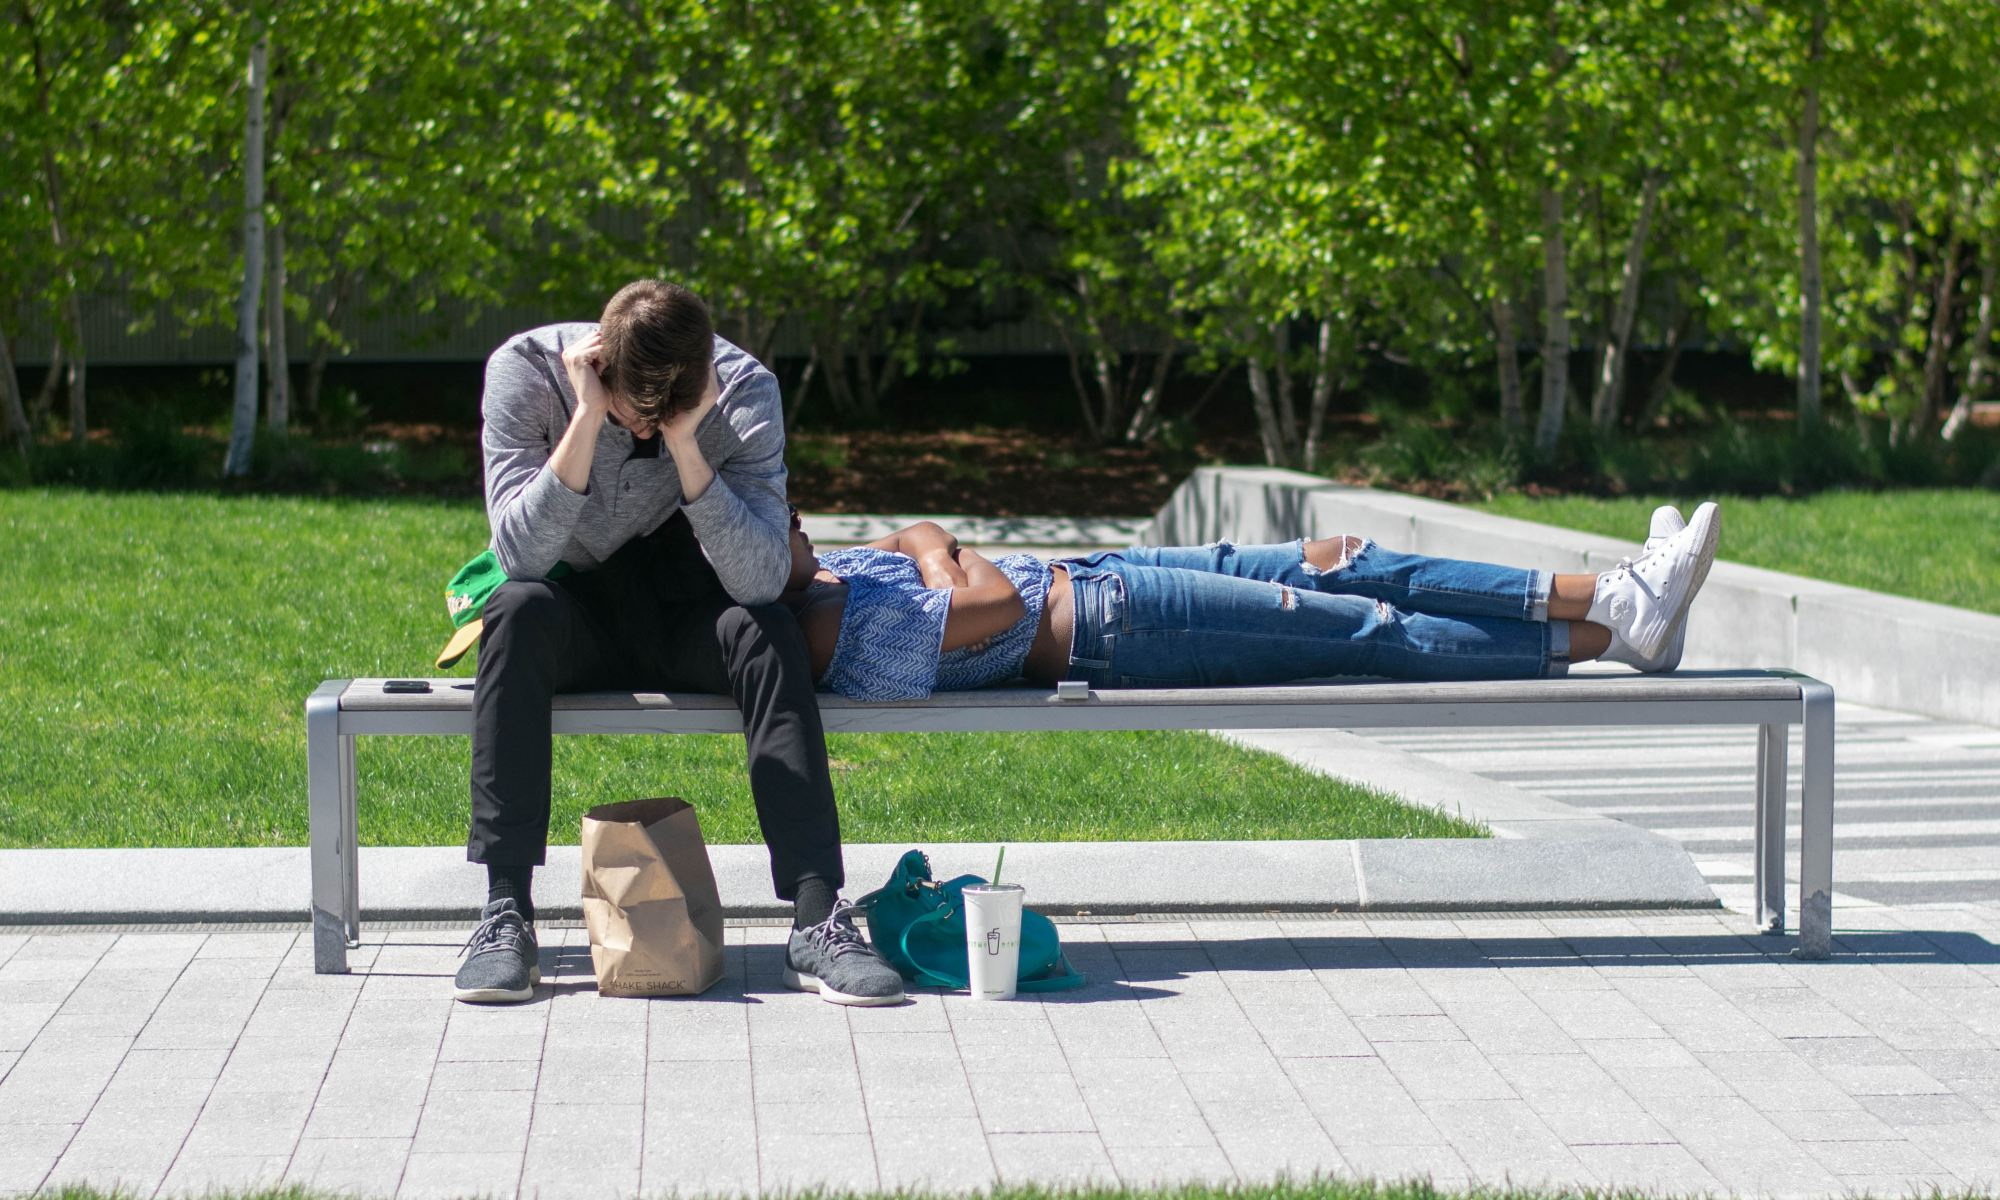 Man suffering from OCD while sitting on white metal bench during daytime